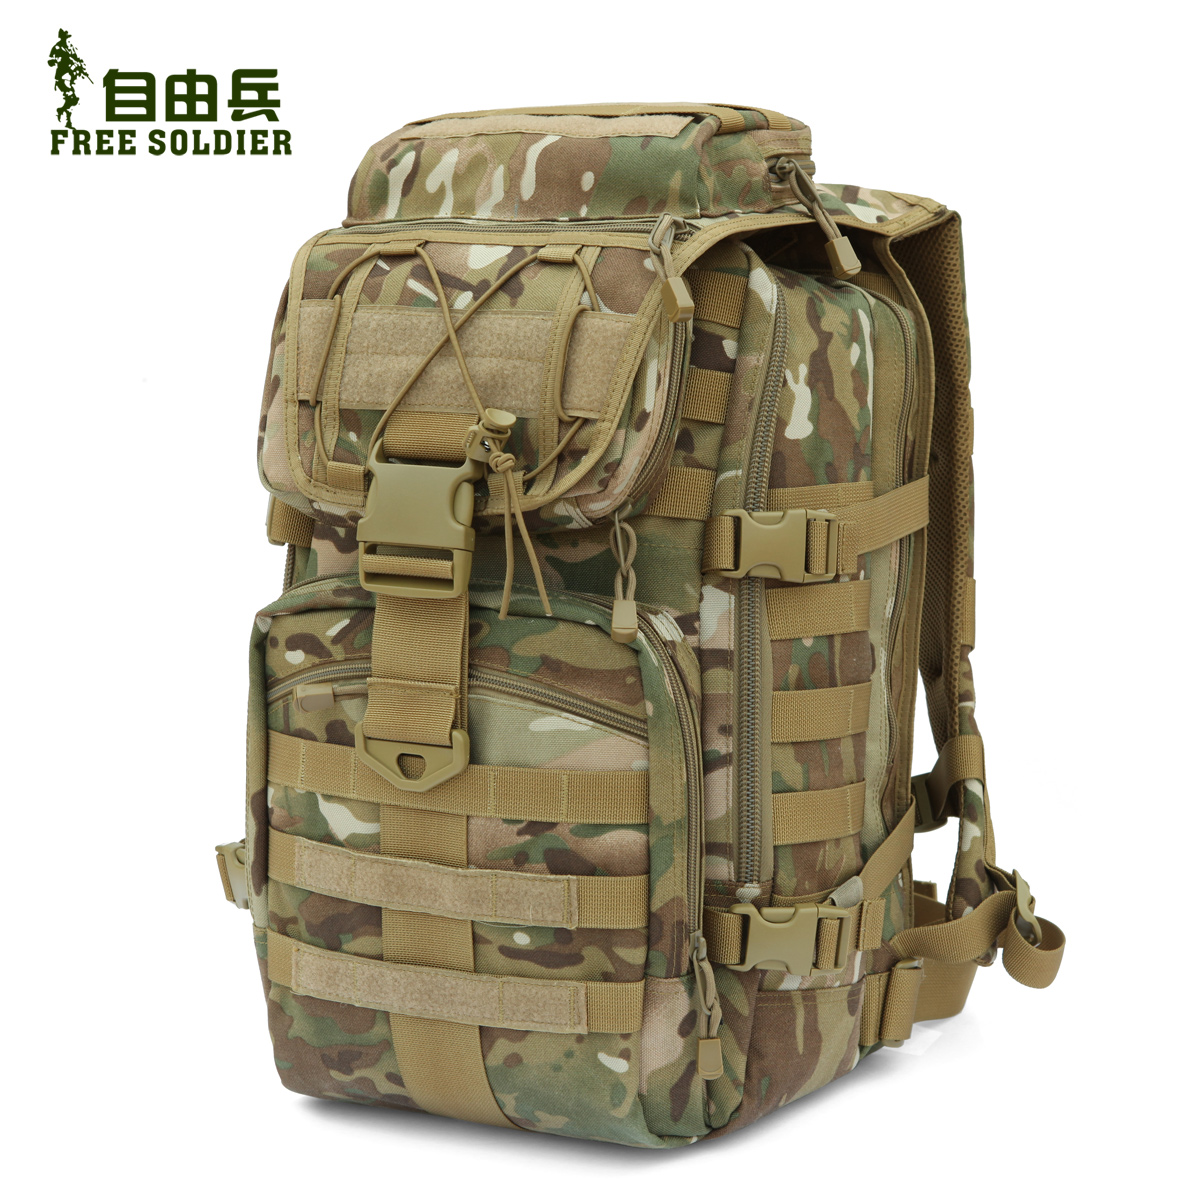 Waterproof Tactical Backpack rps65AGH